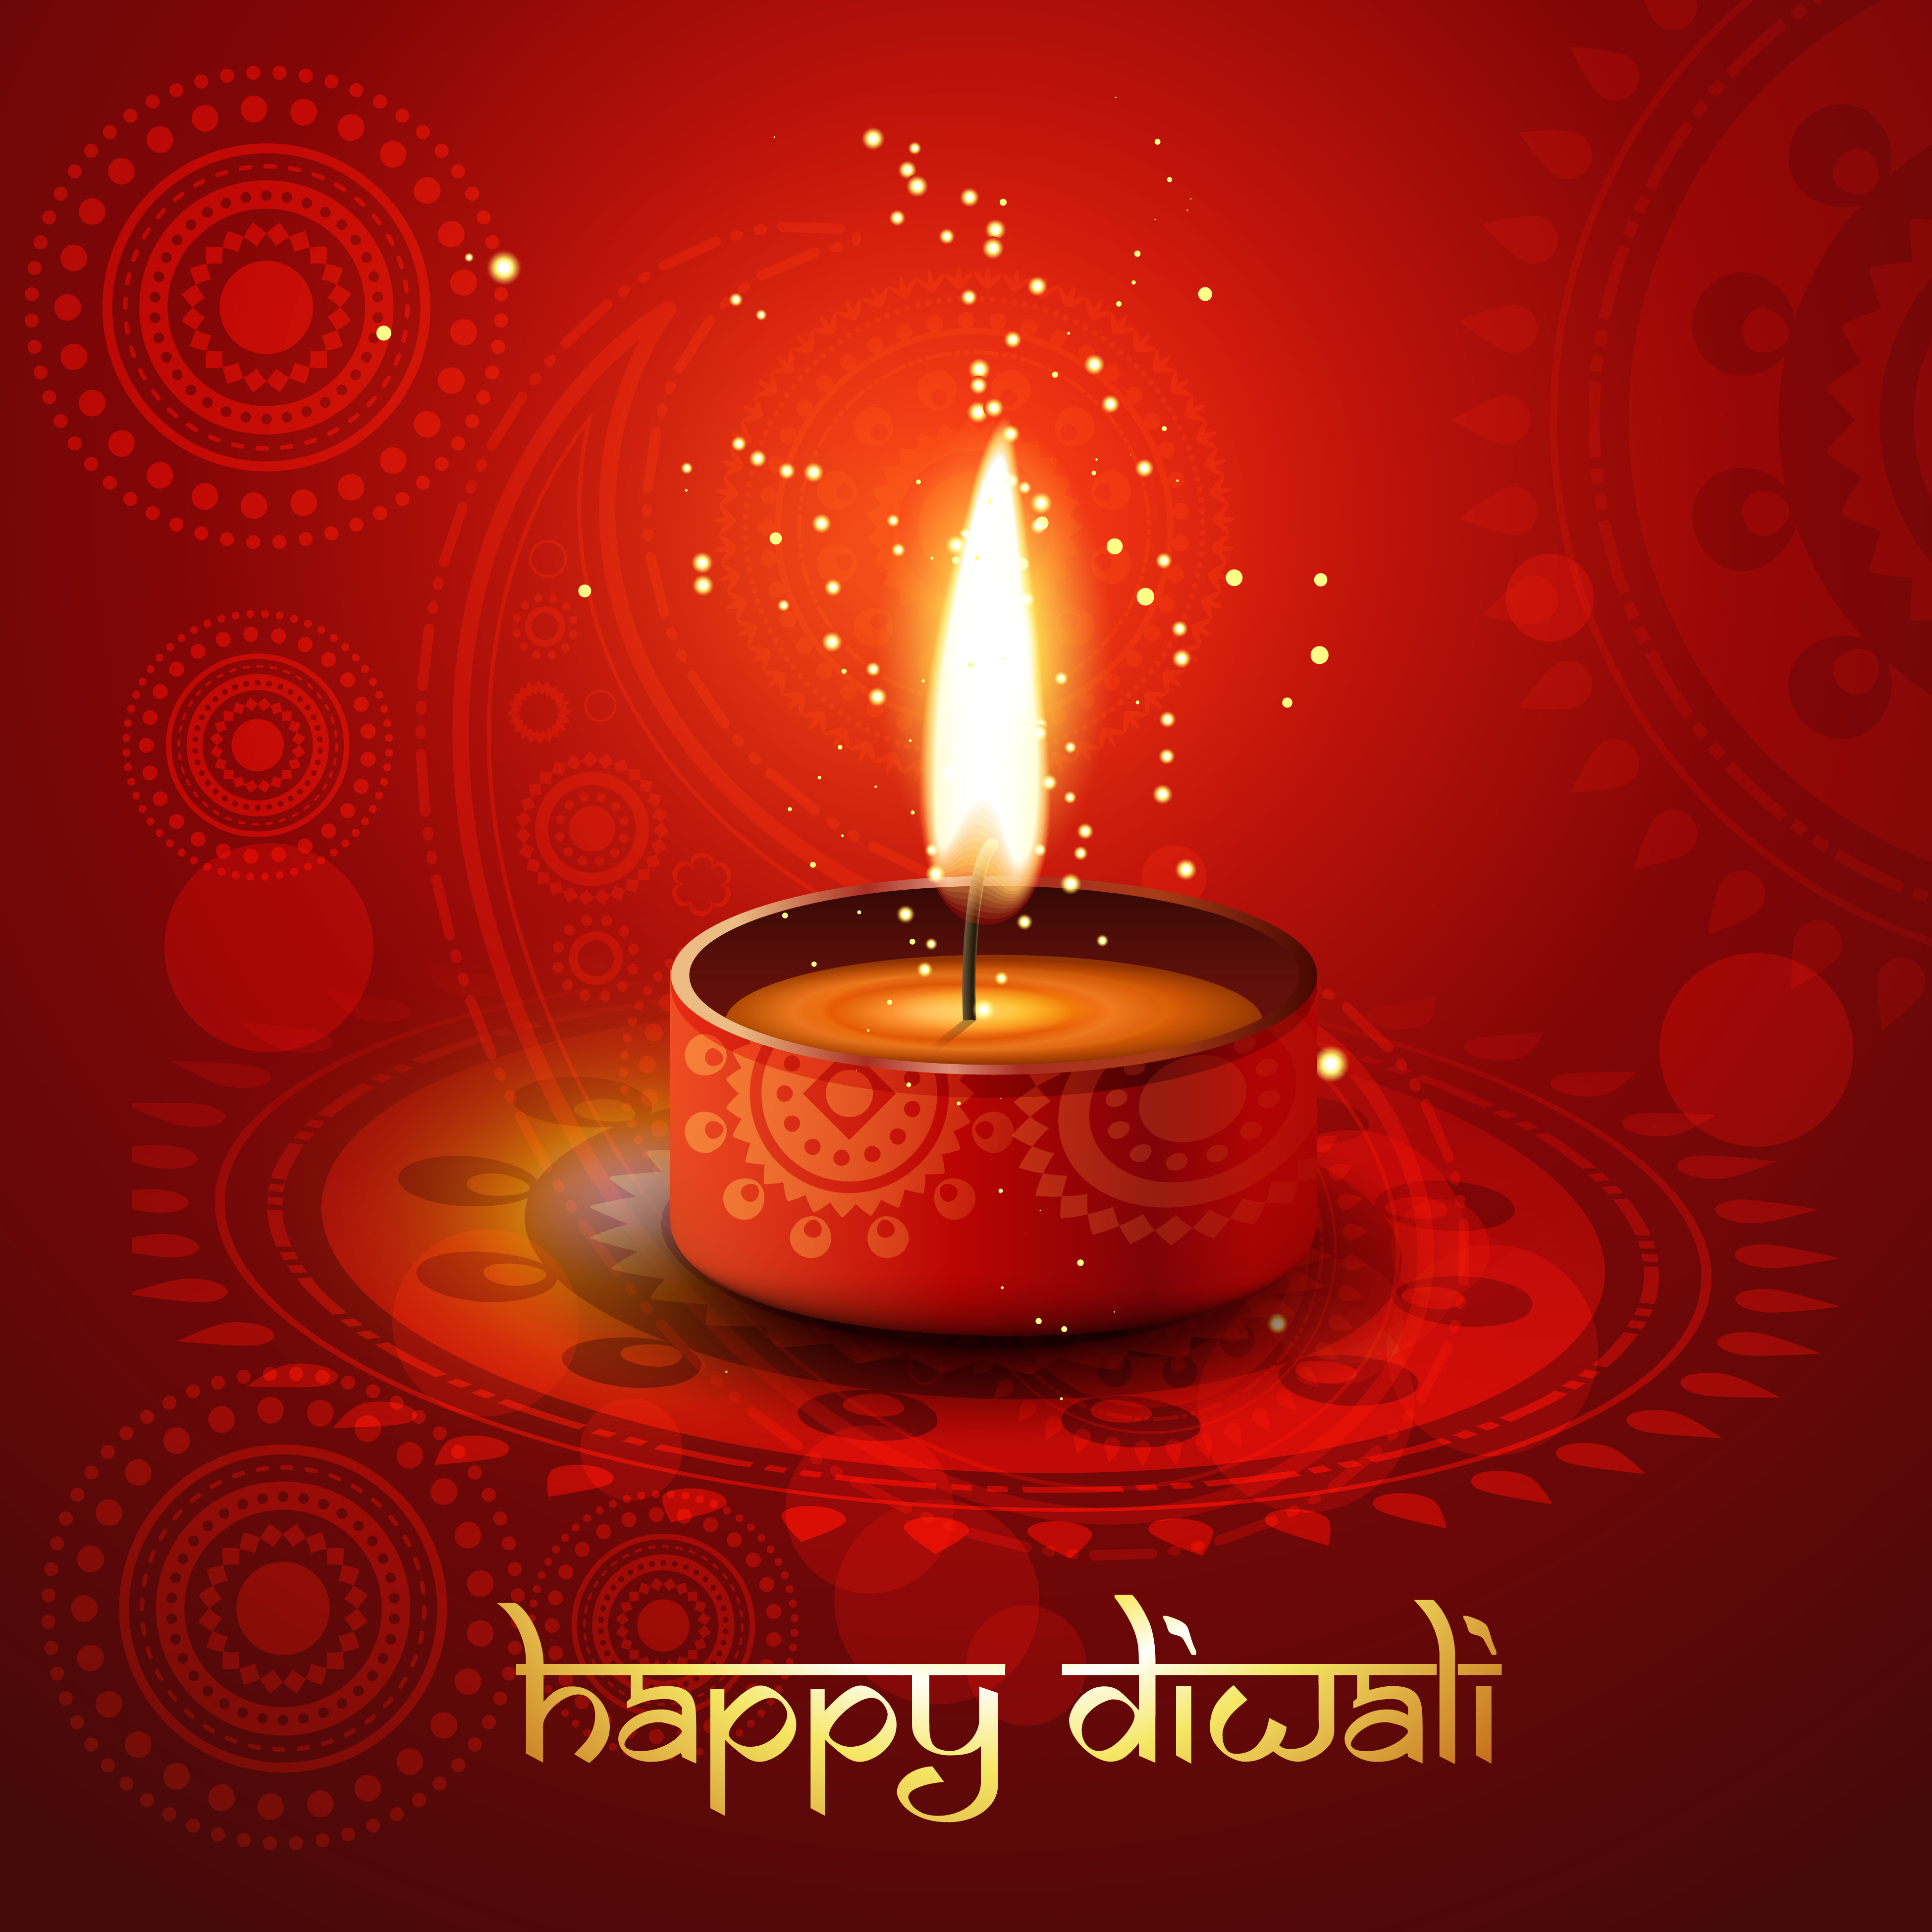 Diwali Card Free Vector Art 21362 Free Downloads